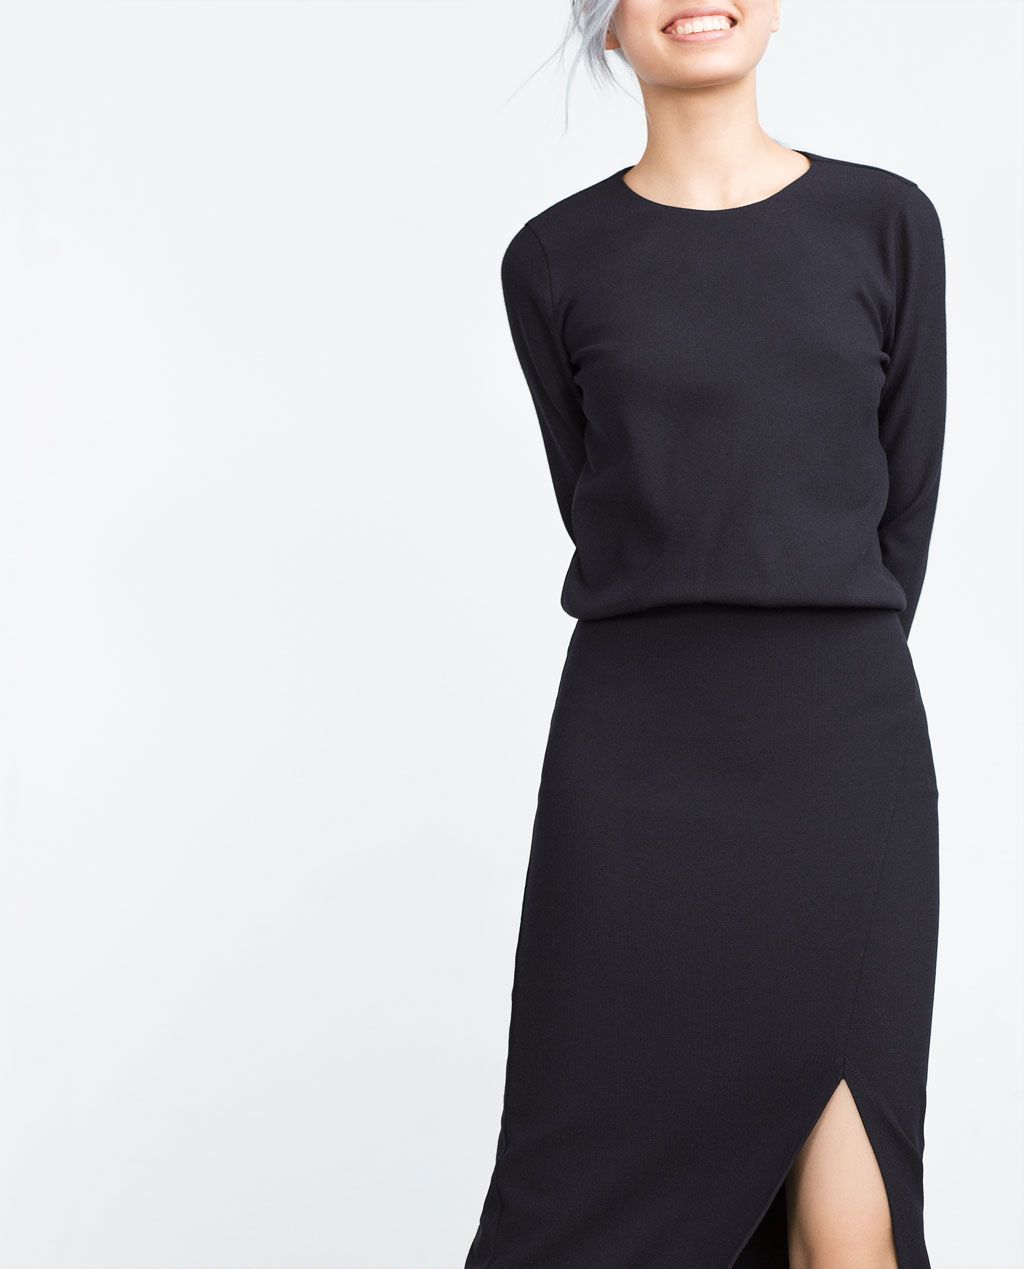 Image 4 Of Midi Dress With Slit From Zara Style Midi